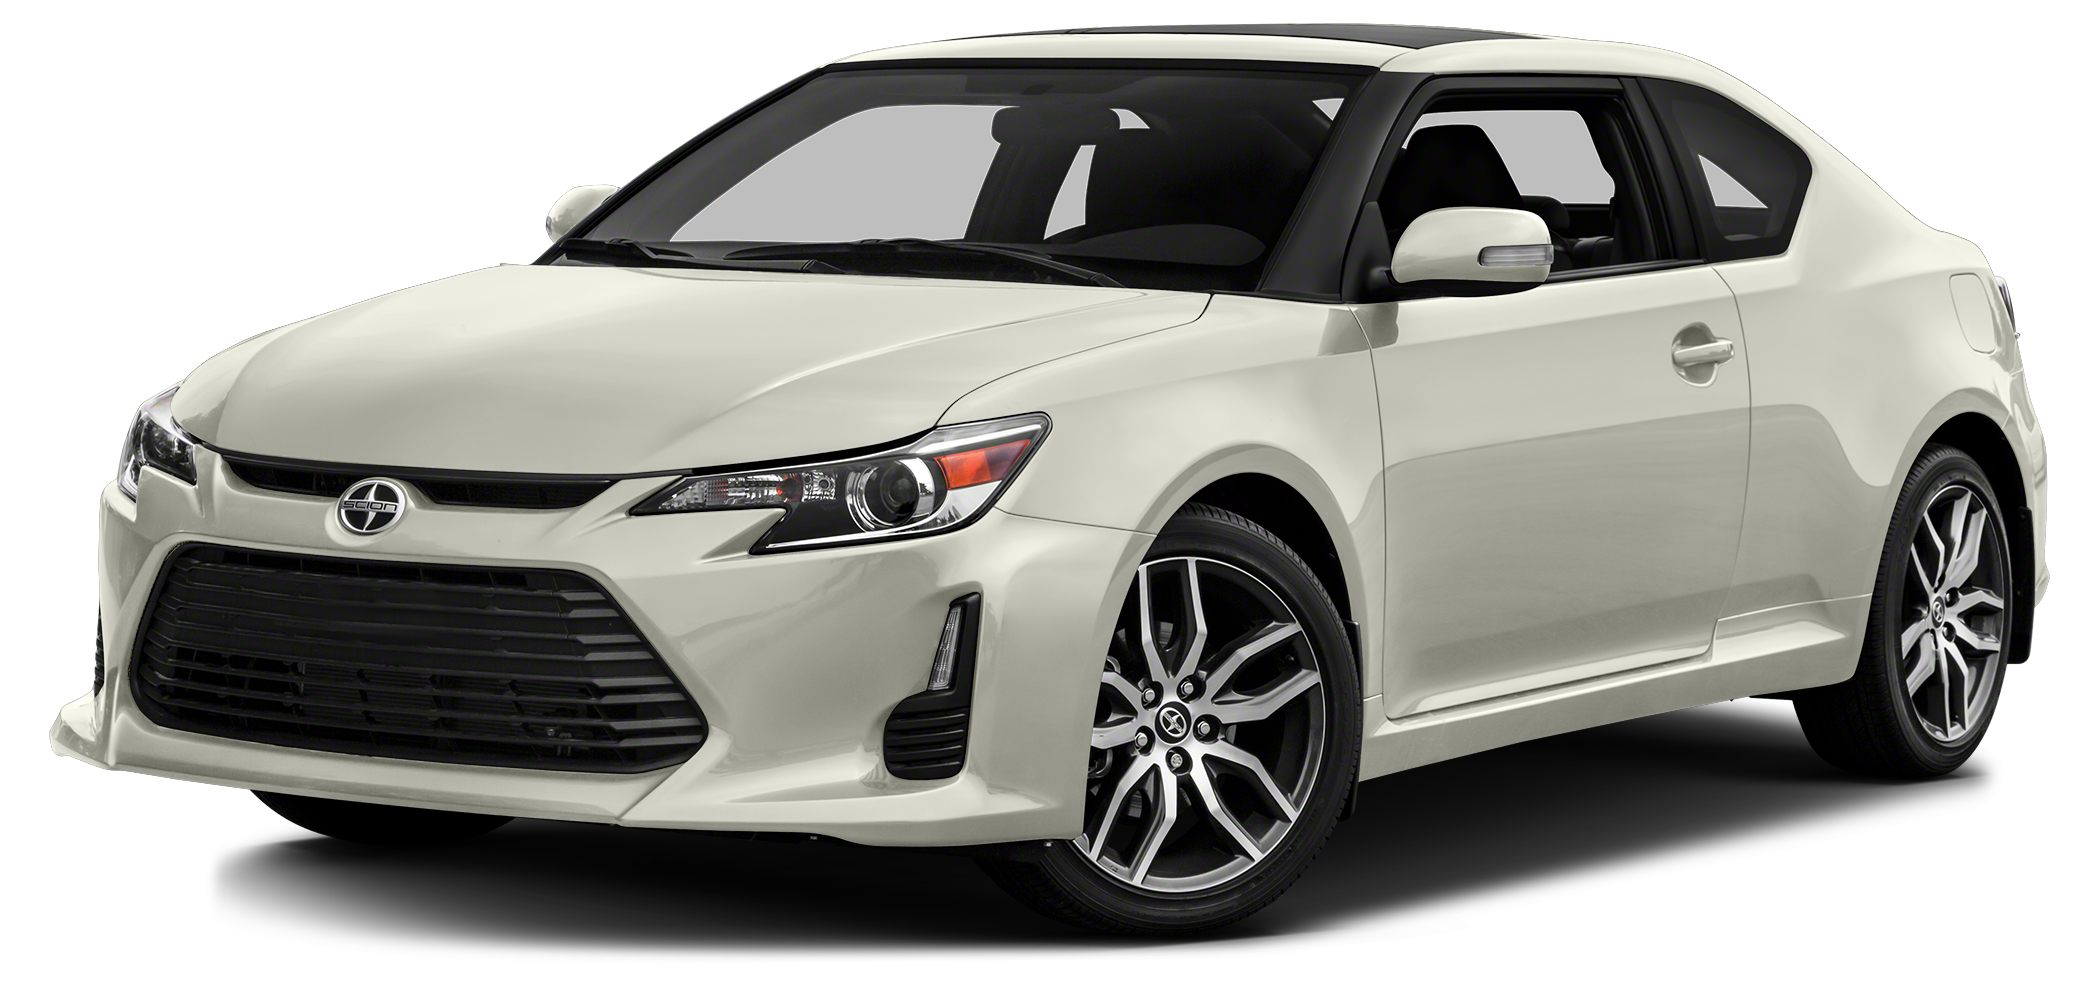 2016 Scion tC Base Introducing the 2016 Scion tC This vehicle integrates style and innovative des